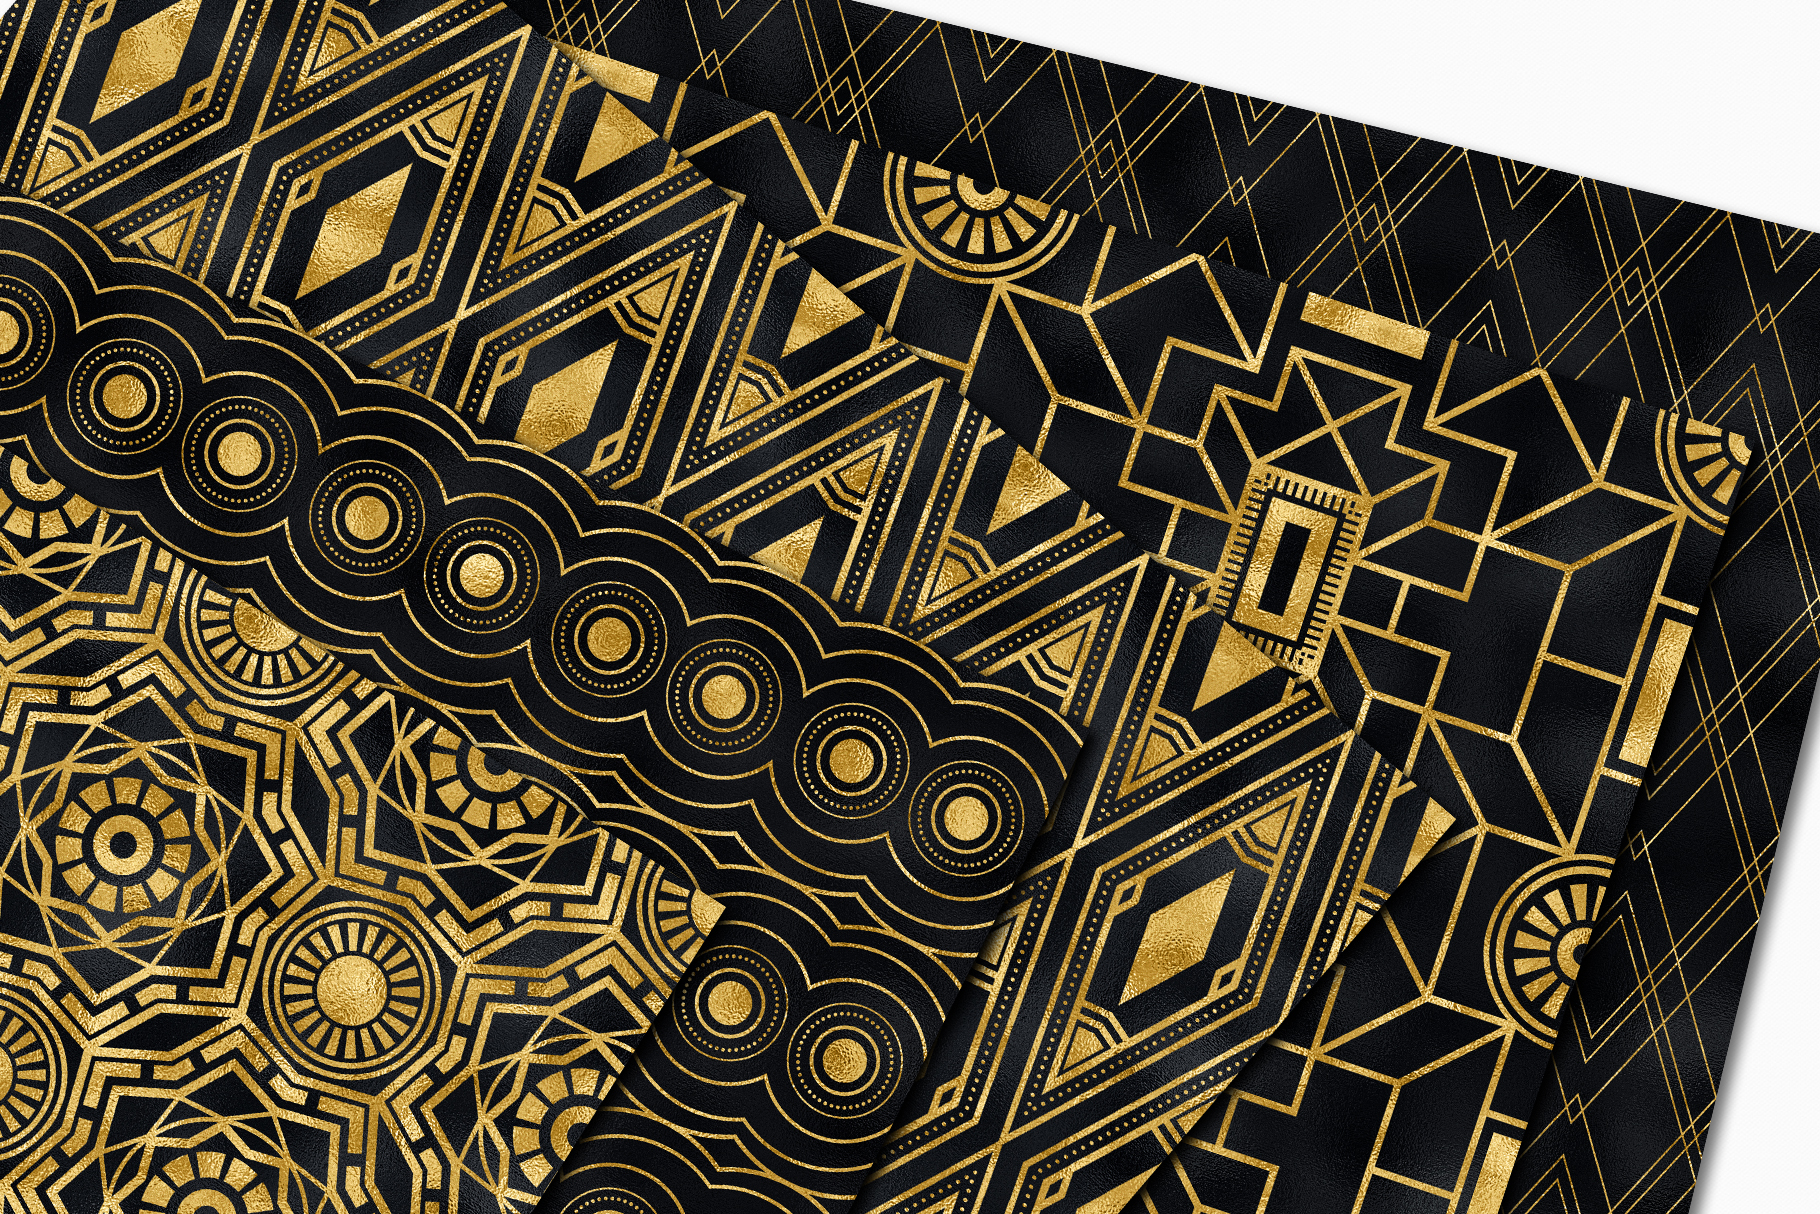 Seamless Art Deco Patterns - Black and Gold Digital Papers example image 3